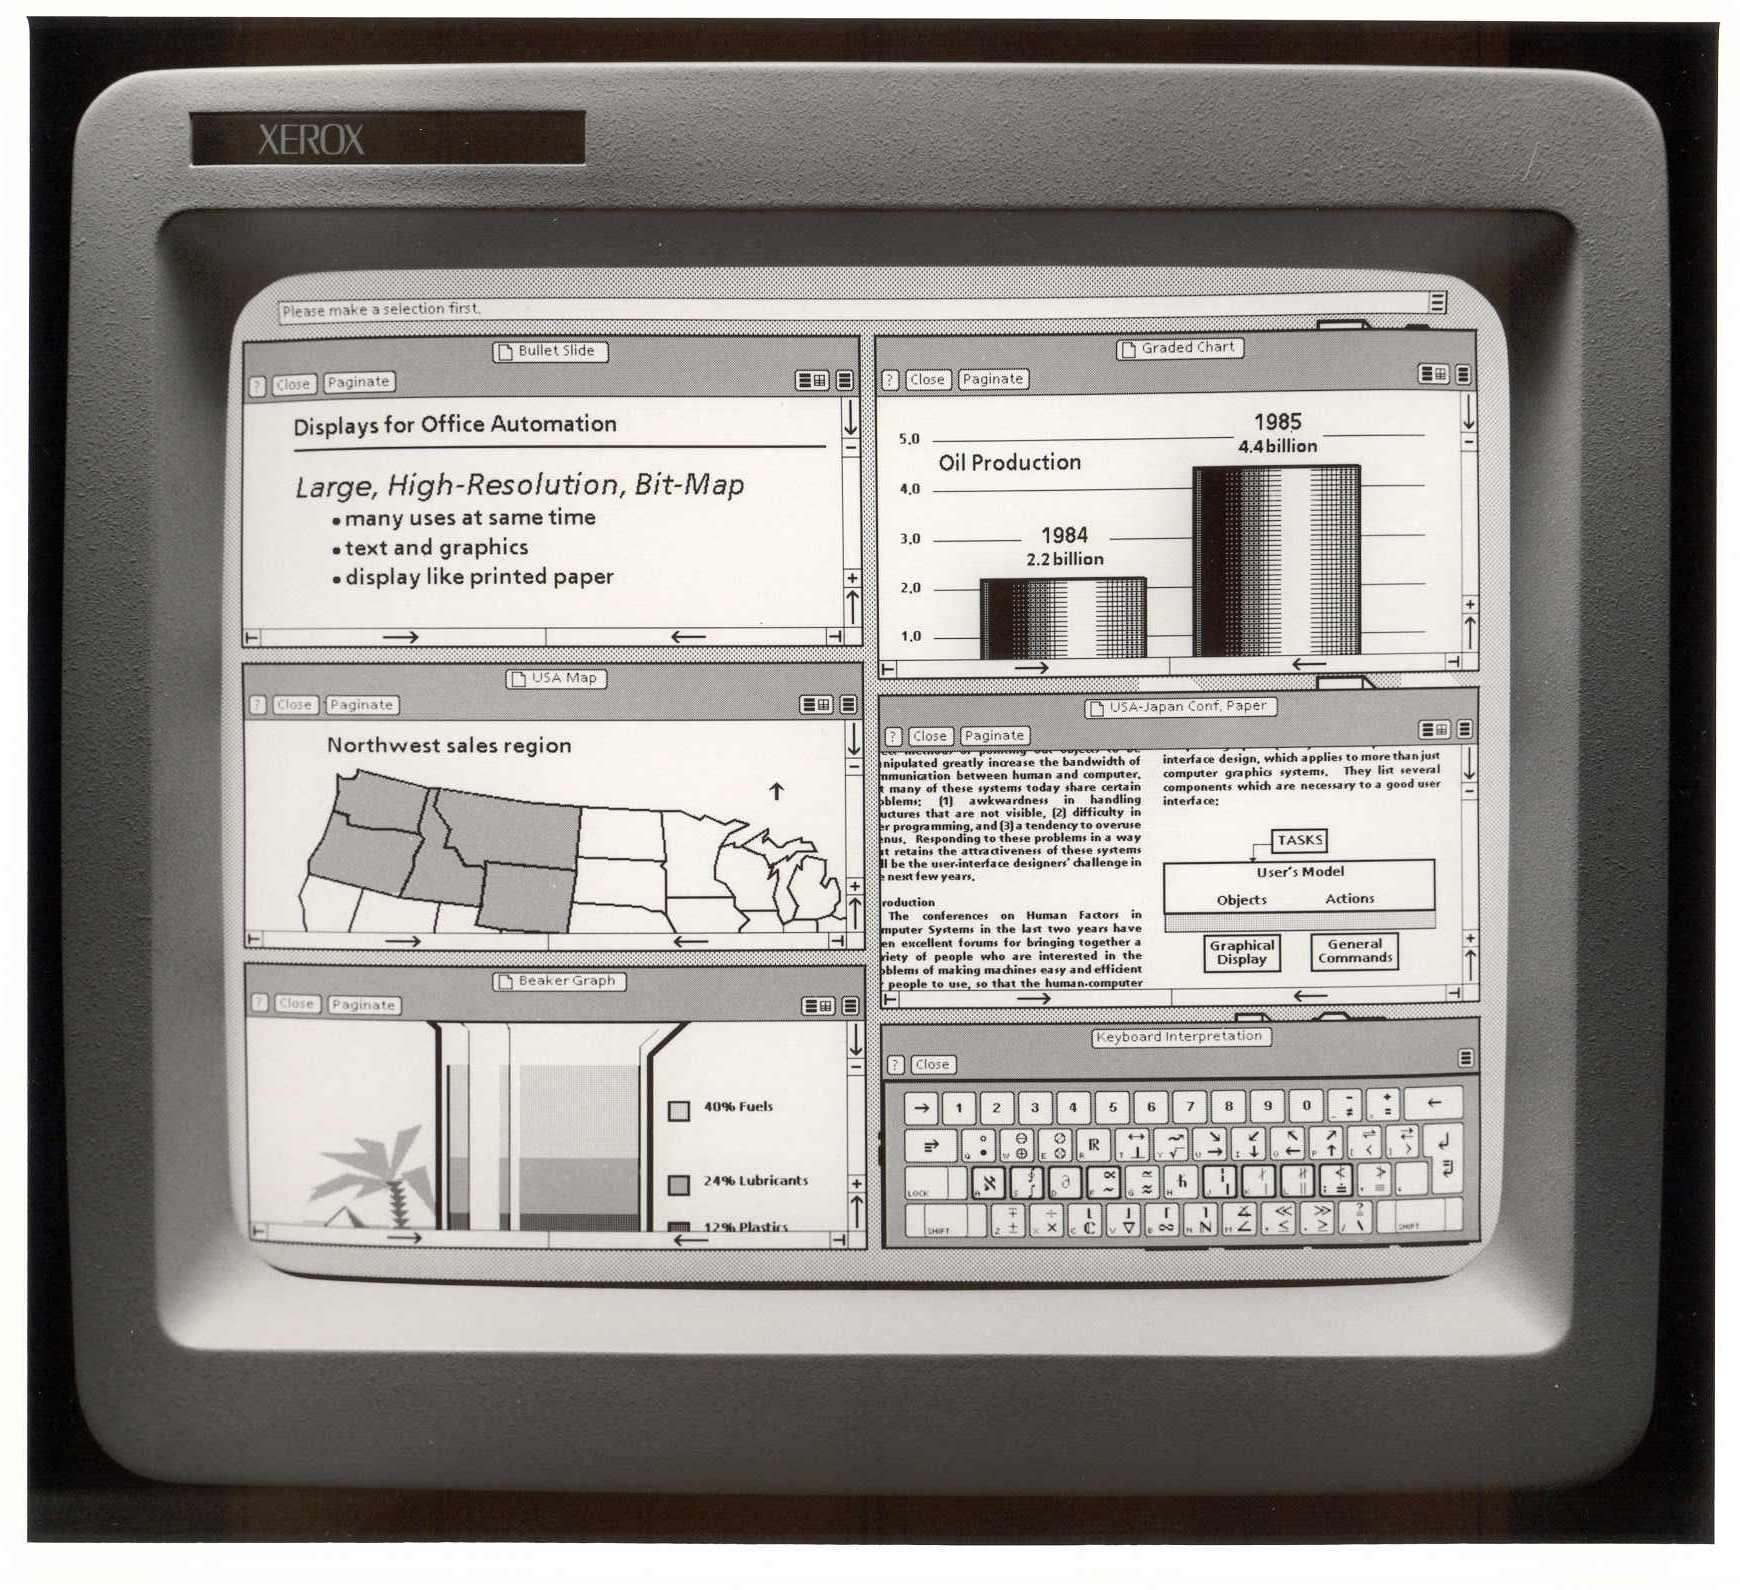 Anticipatory Design-Xerox star workstation one of the first GUIs